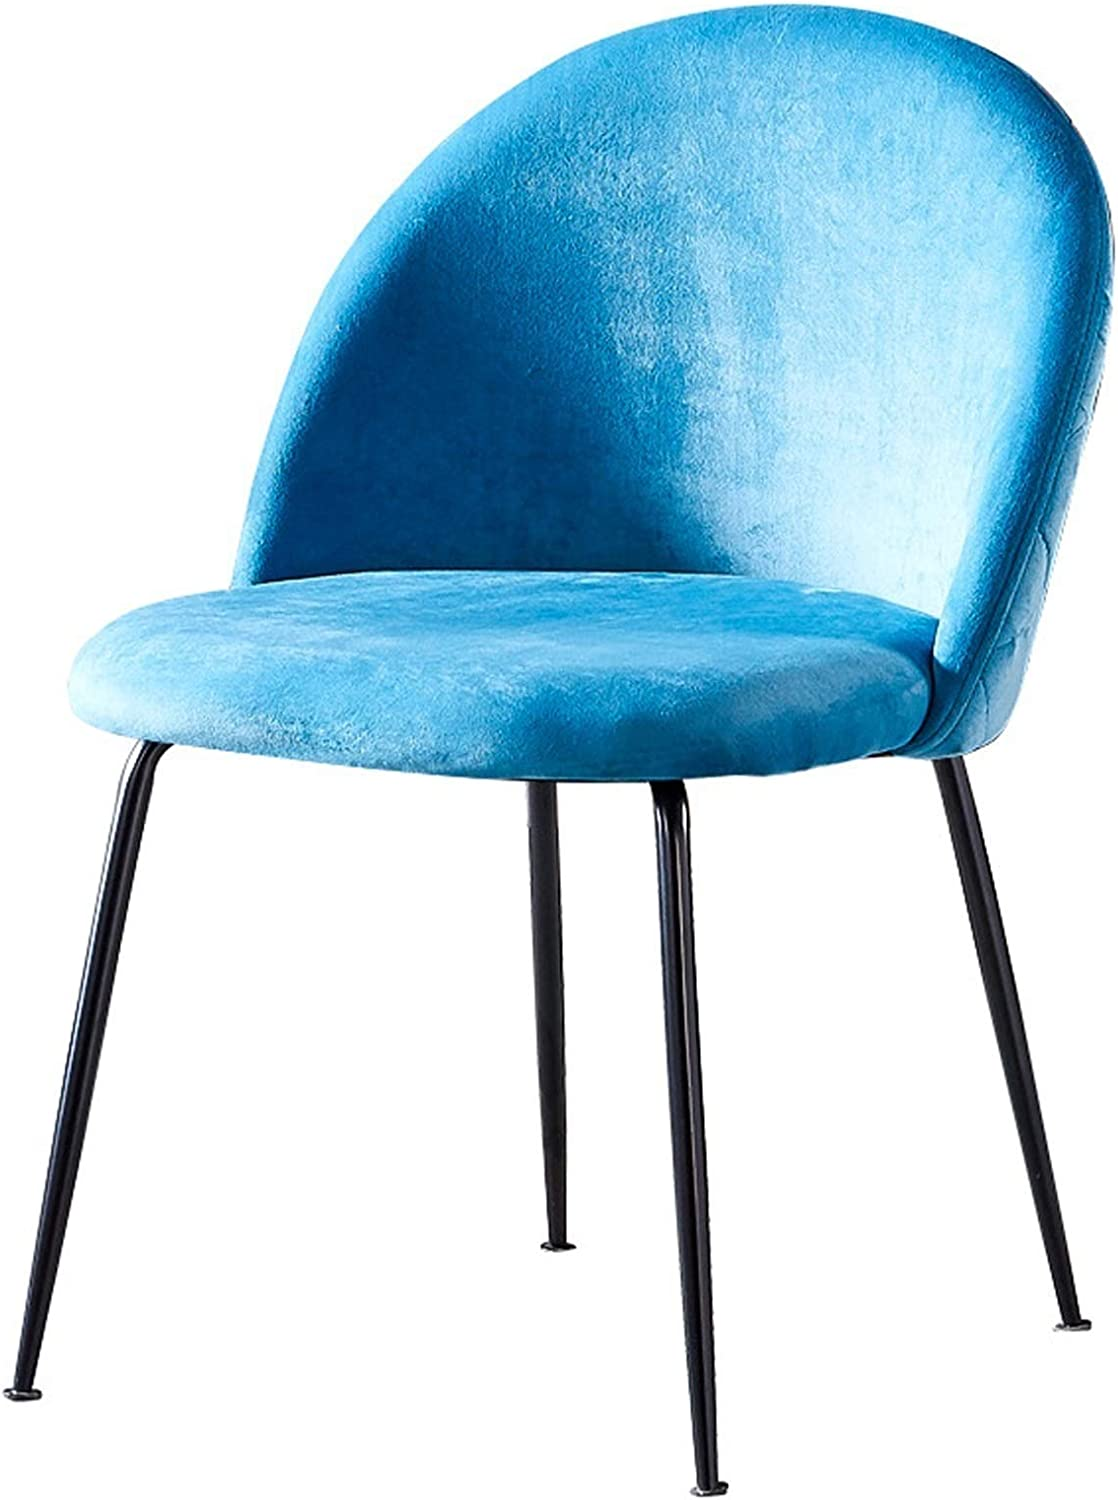 Dining Chairs Modern Style Soft Velvet Fabric Seat Sturdy Metal Legs and Ergonomics Backrest Dining Living Bedroom Home Office Chairs (Color : Lake Blue)